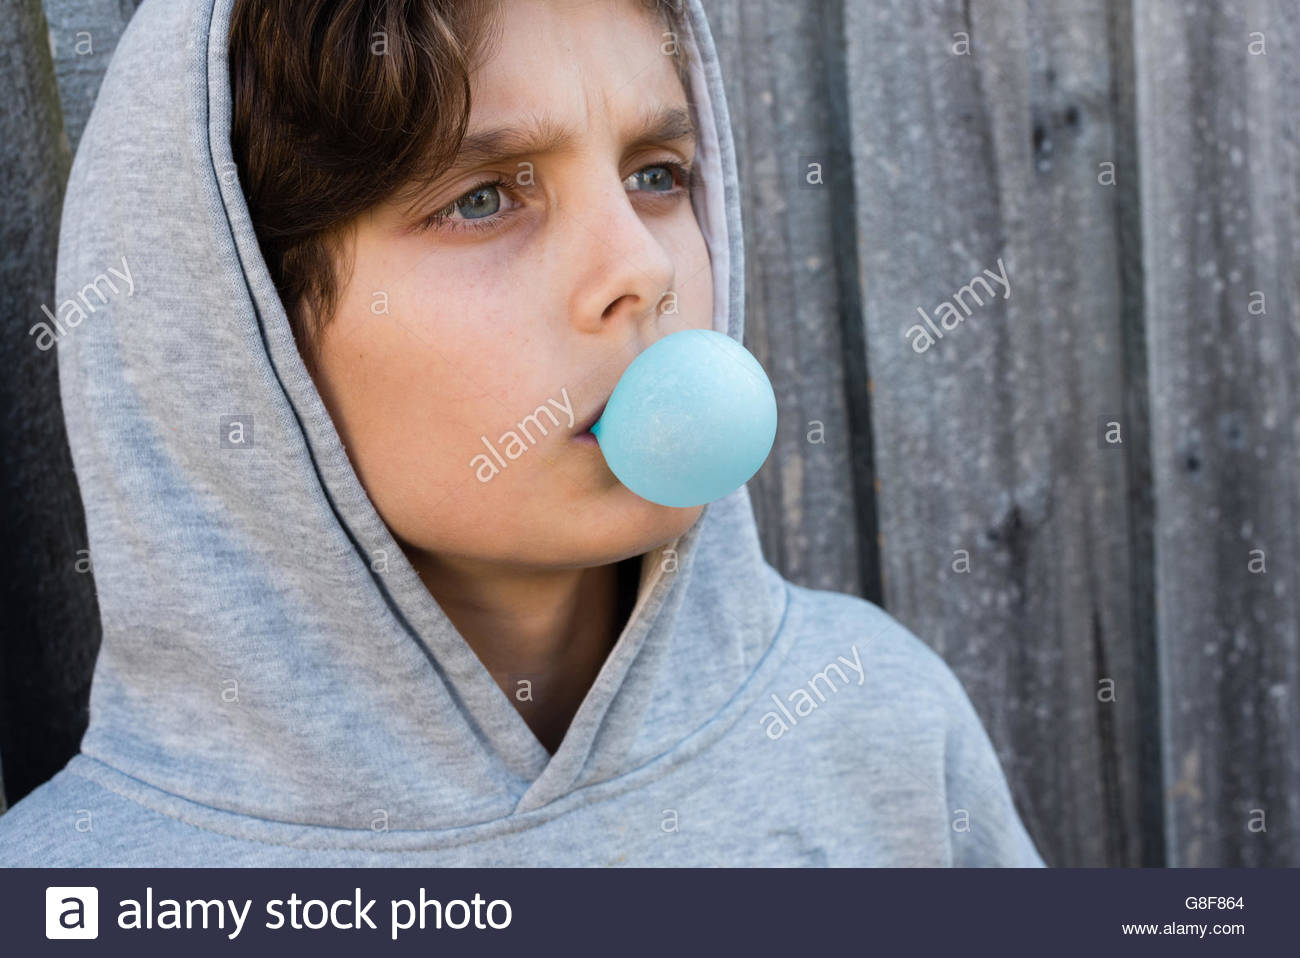 Close up angled view of teenage boy in grey hoodie blowing blue bubble gum against grey wooden fence - Stock Image